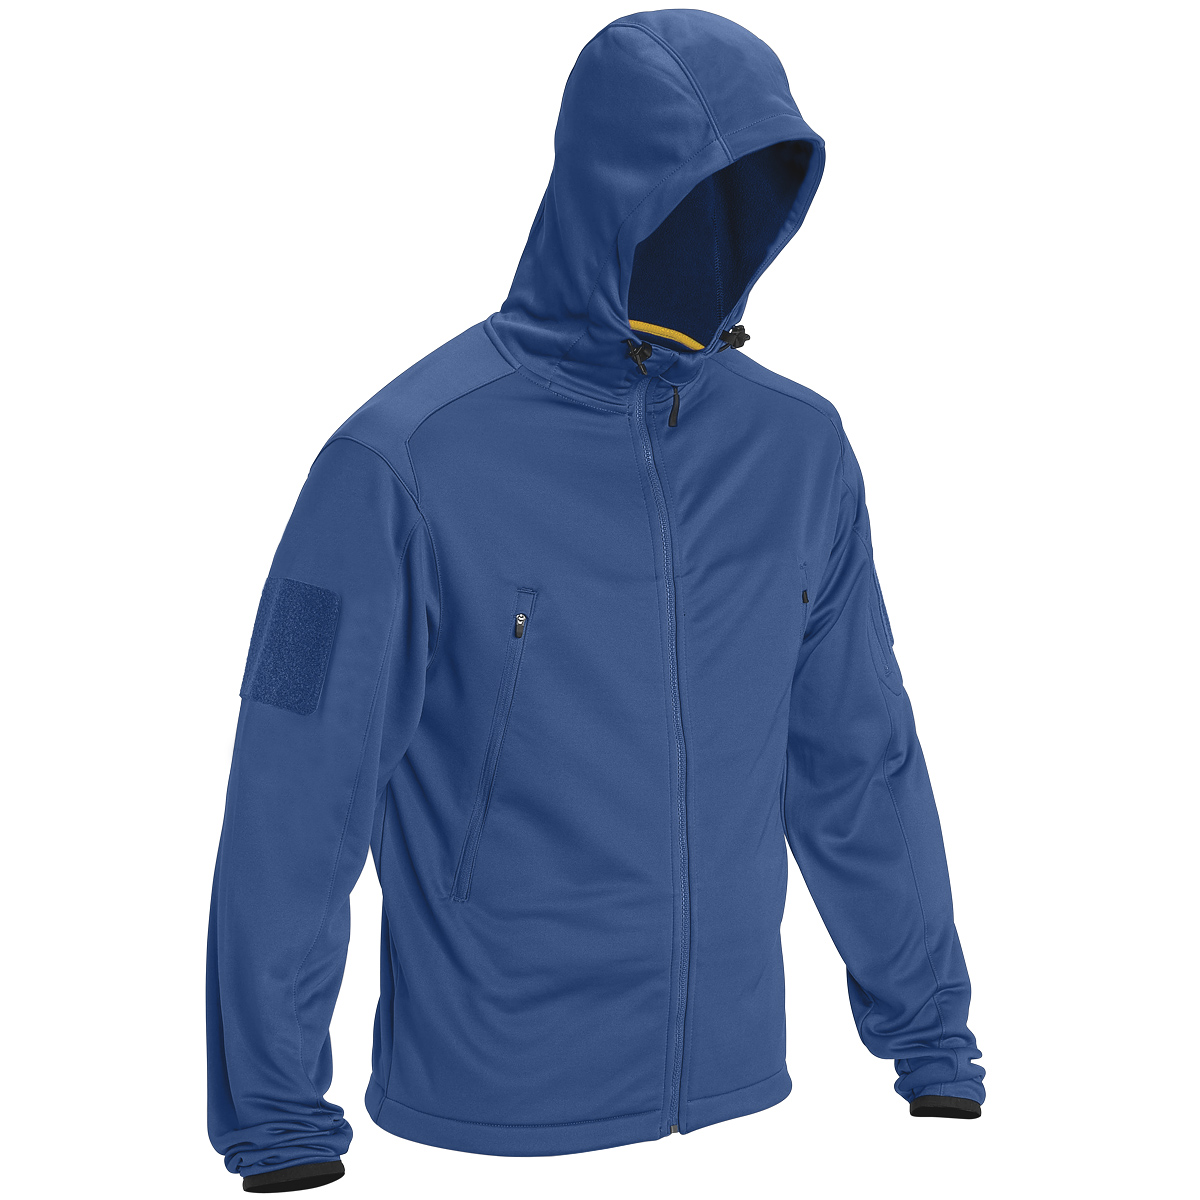 5.11 TACTICAL REACTOR HOODIE WARM MENS MILITARY CCW FLEECE FULL ZIP COBALT BLUE